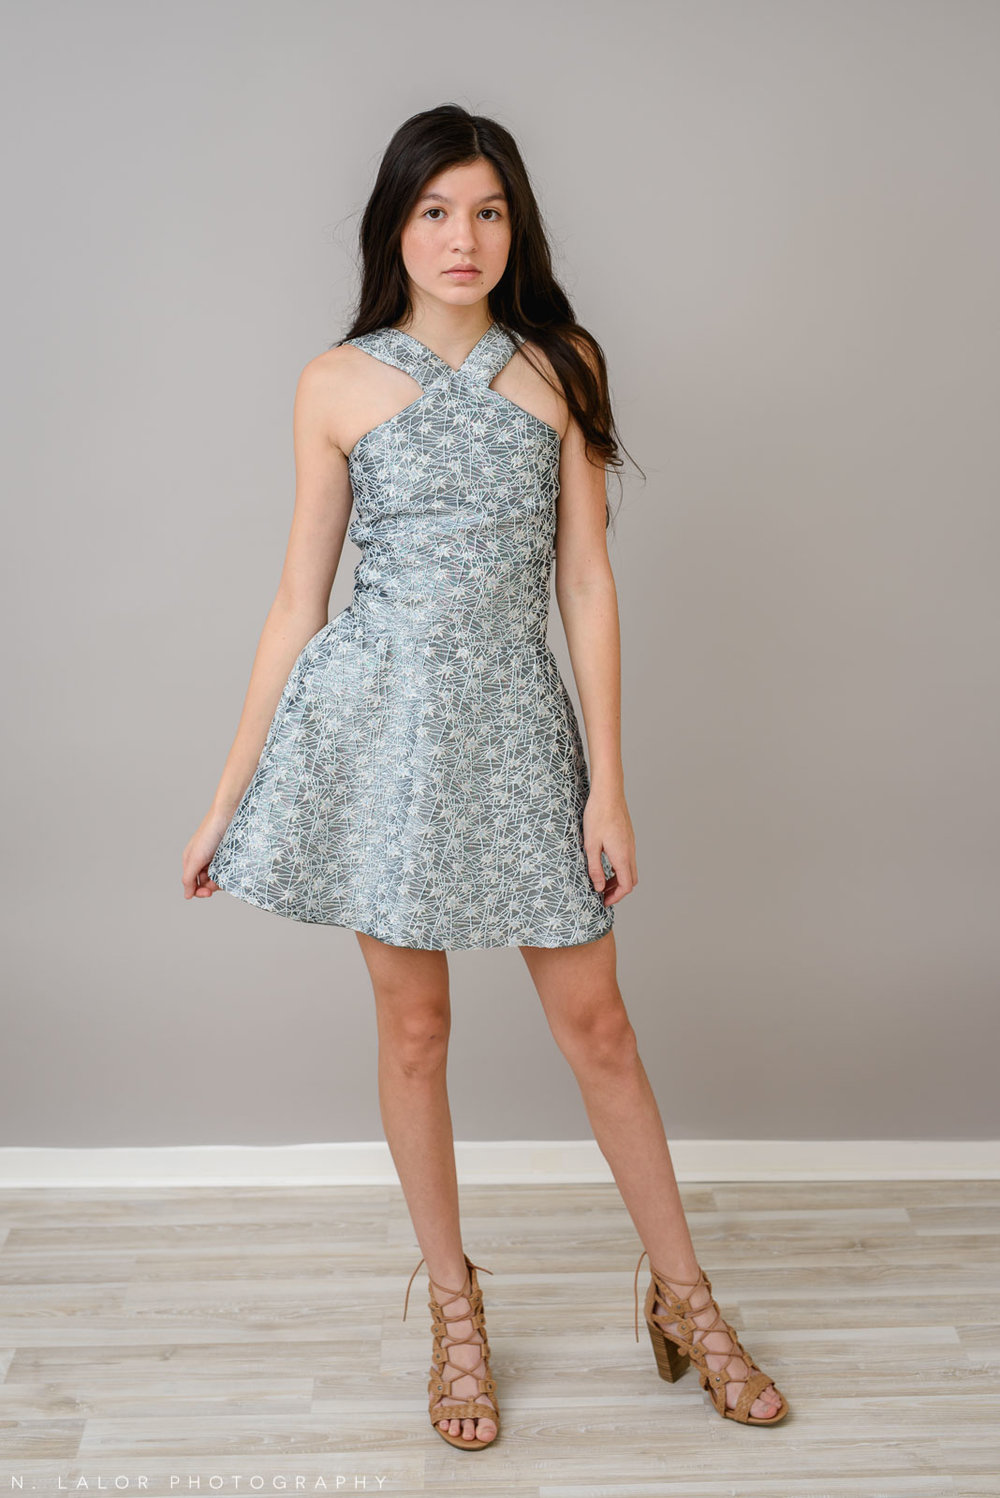 REESE dress in Silver + Pale Blue Galaxy. Photoshoot for Stella M'Lia by N. Lalor Photography in Greenwich, Connecticut.